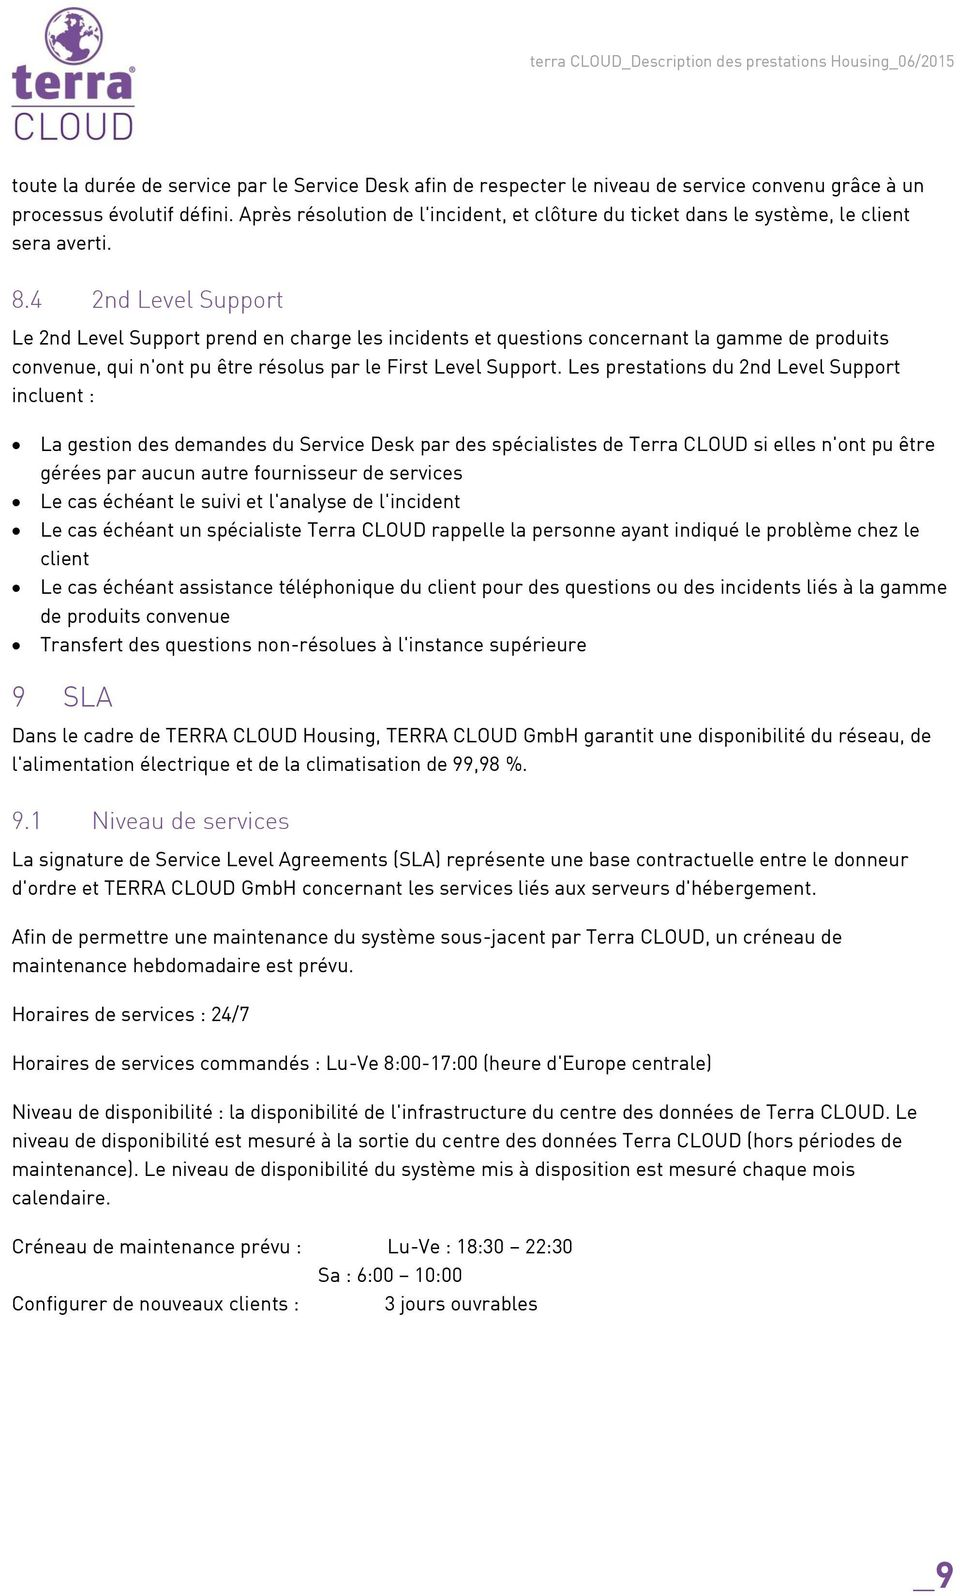 4 2nd Level Support Le 2nd Level Support prend en charge les incidents et questions concernant la gamme de produits convenue, qui n'ont pu être résolus par le First Level Support.